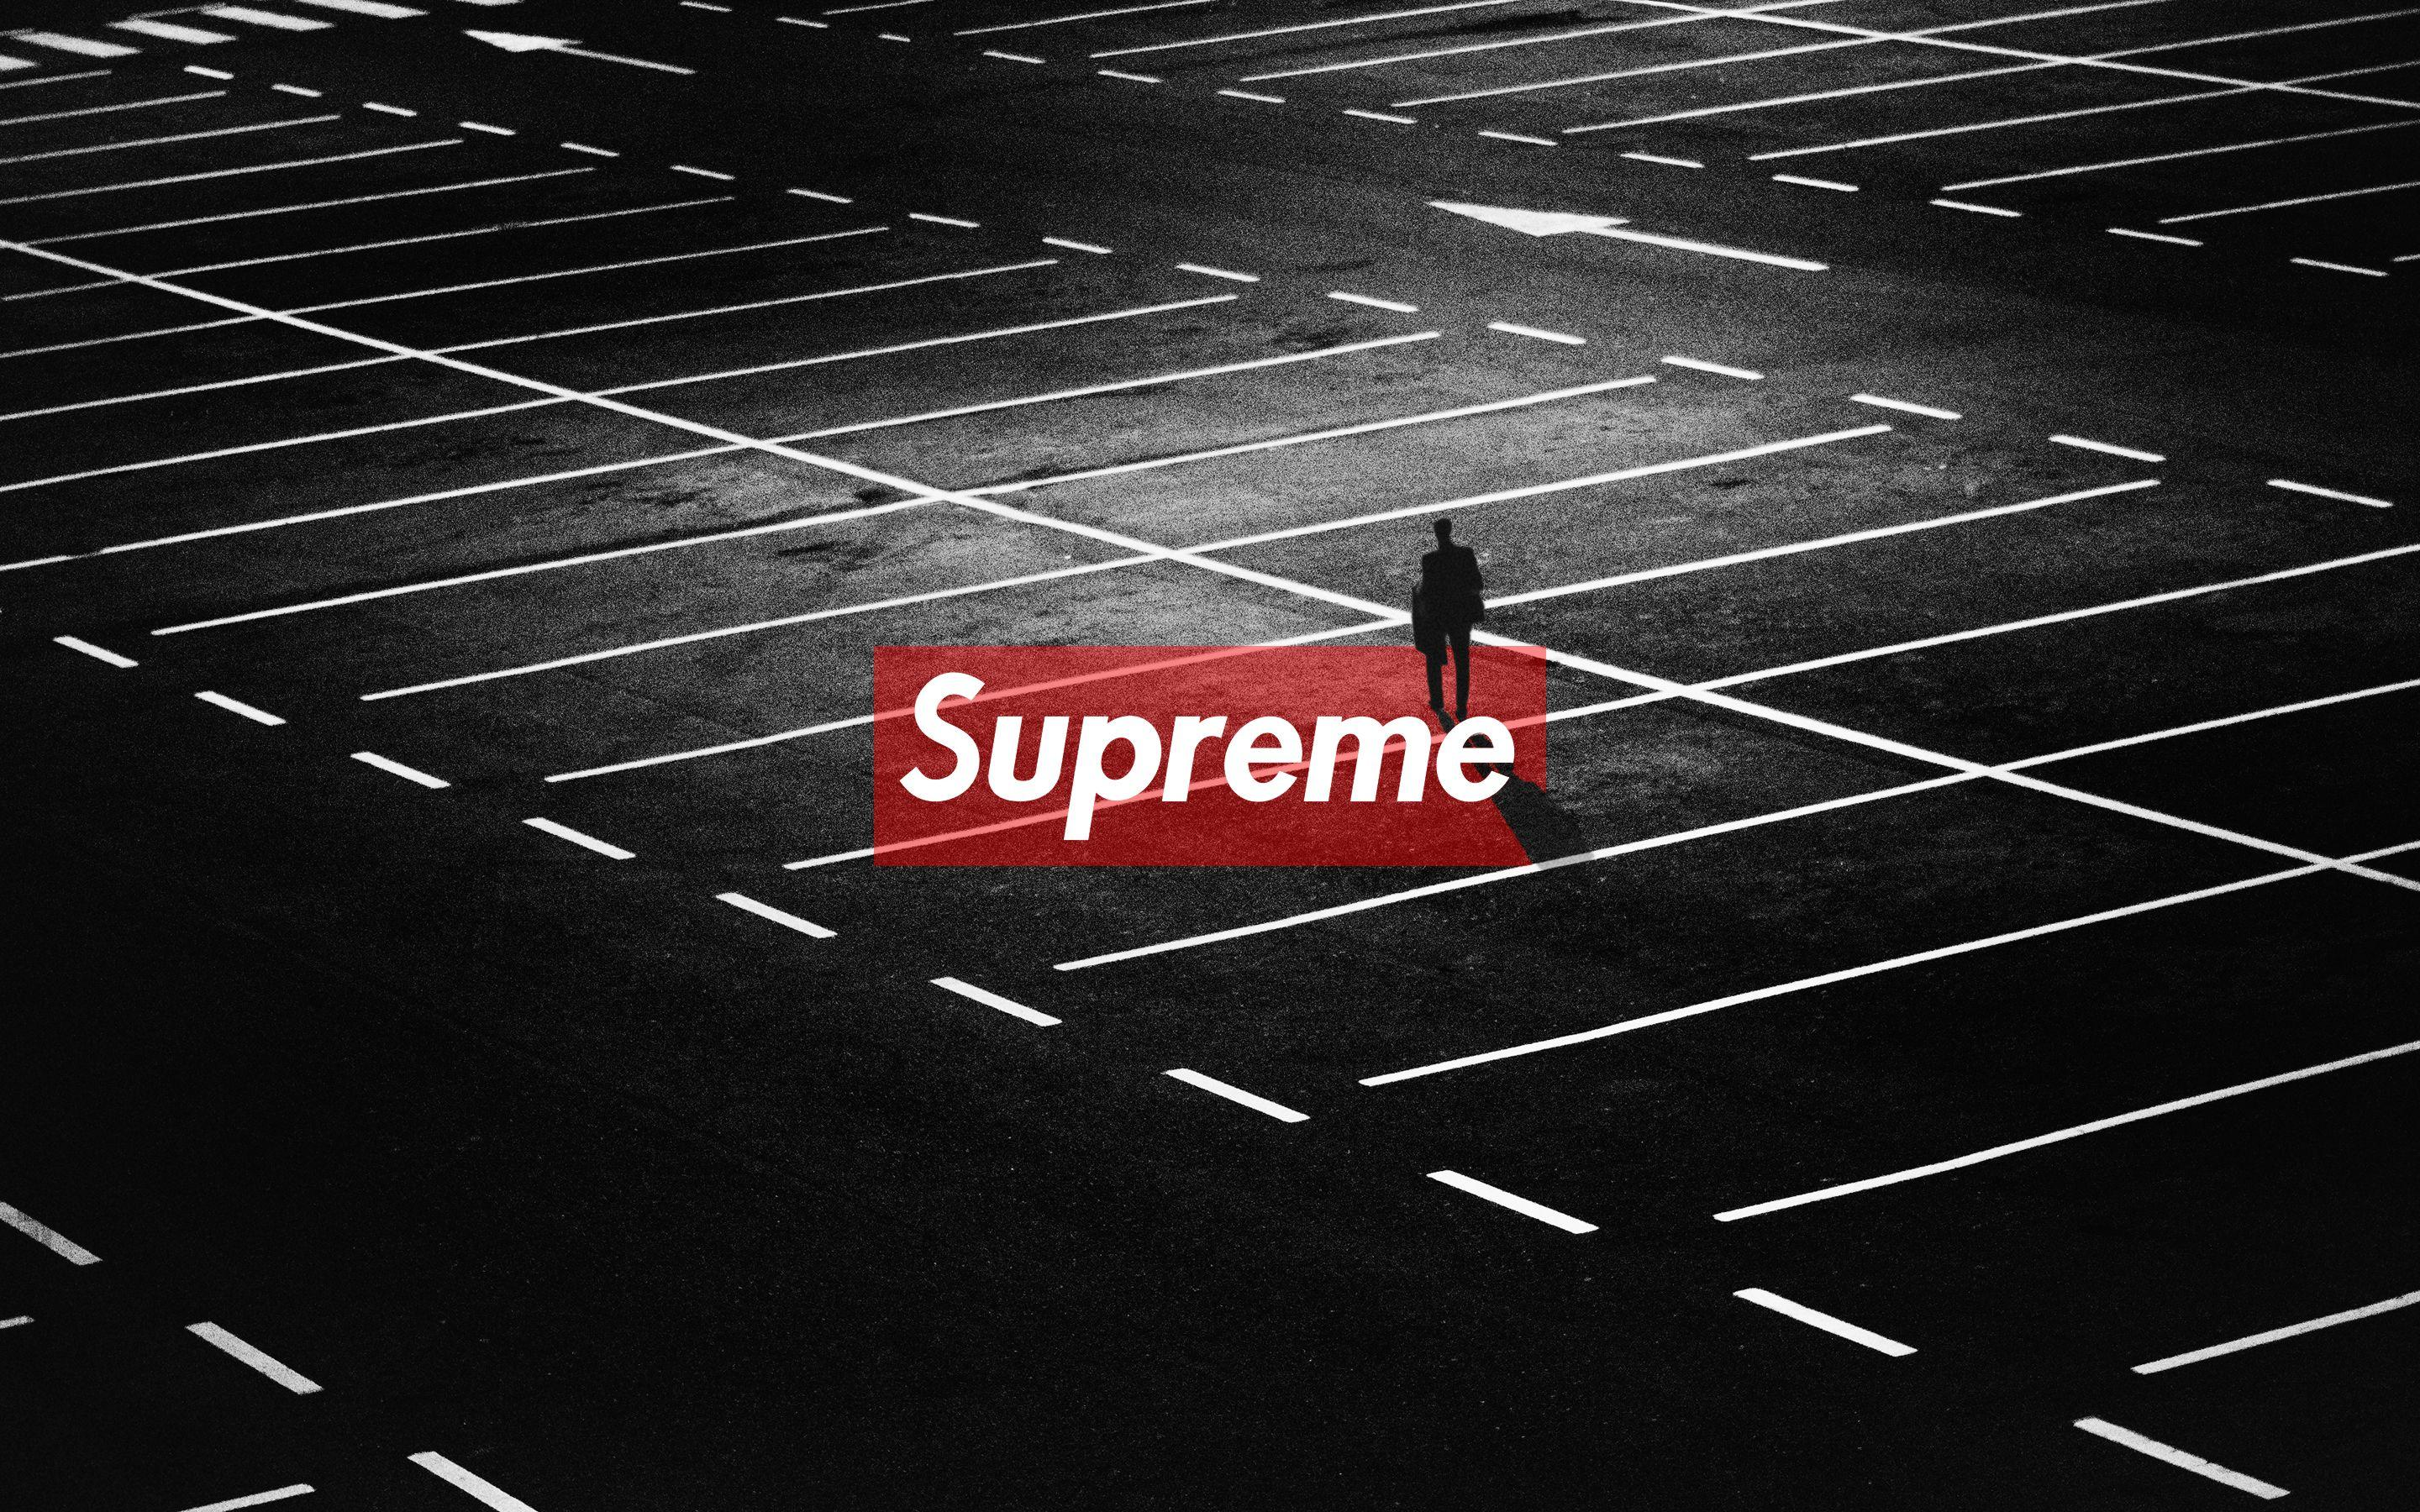 Supreme Wallpapers Wallpaper Cave HD Wallpapers Download Free Images Wallpaper [1000image.com]